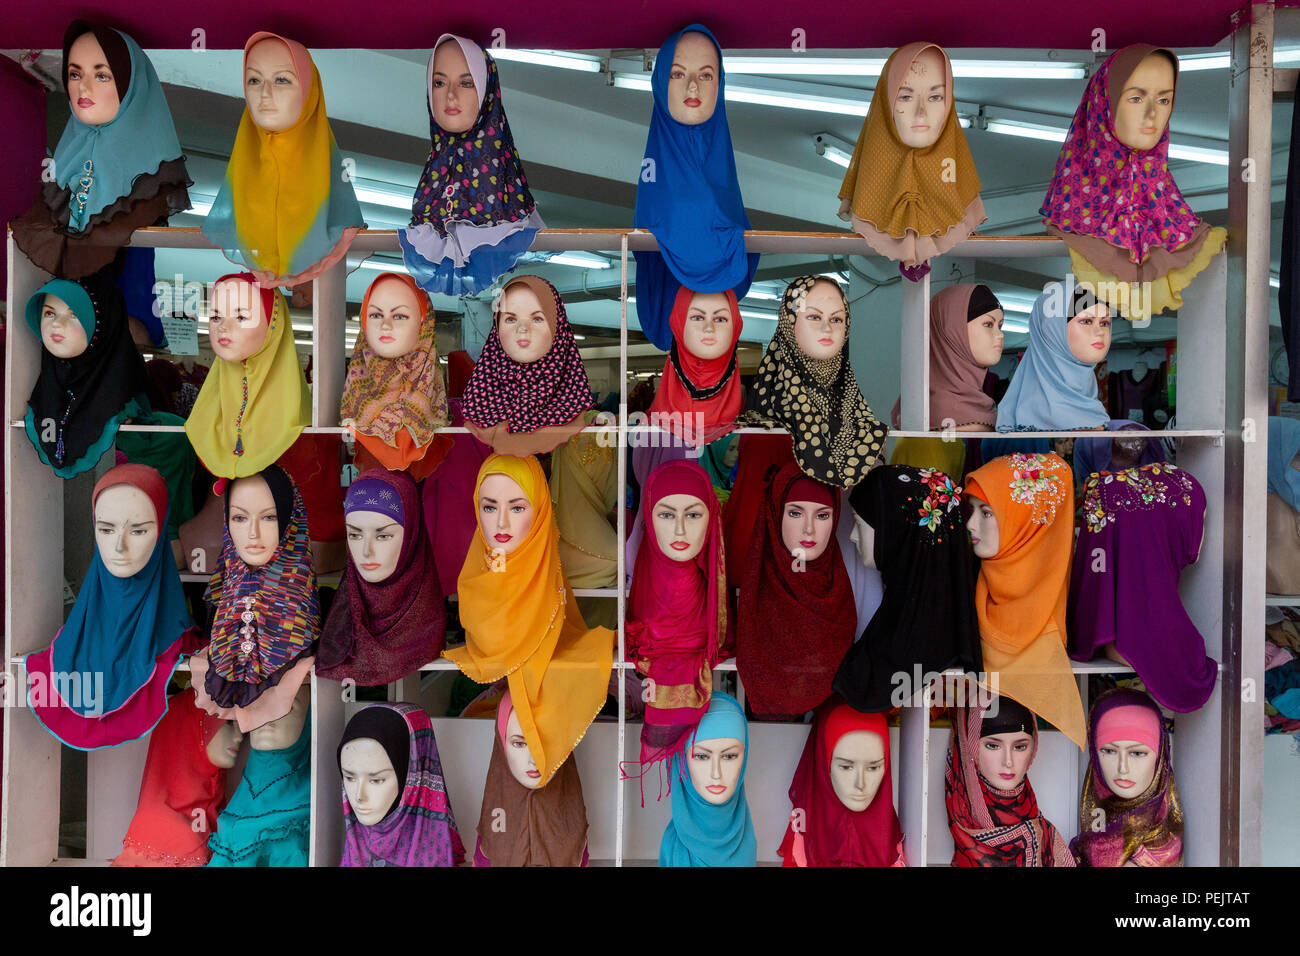 Headscarves (aka hijabs or tudungs) on mannequin heads in front of a store in Kuala Lumpur, Malaysia. - Stock Image